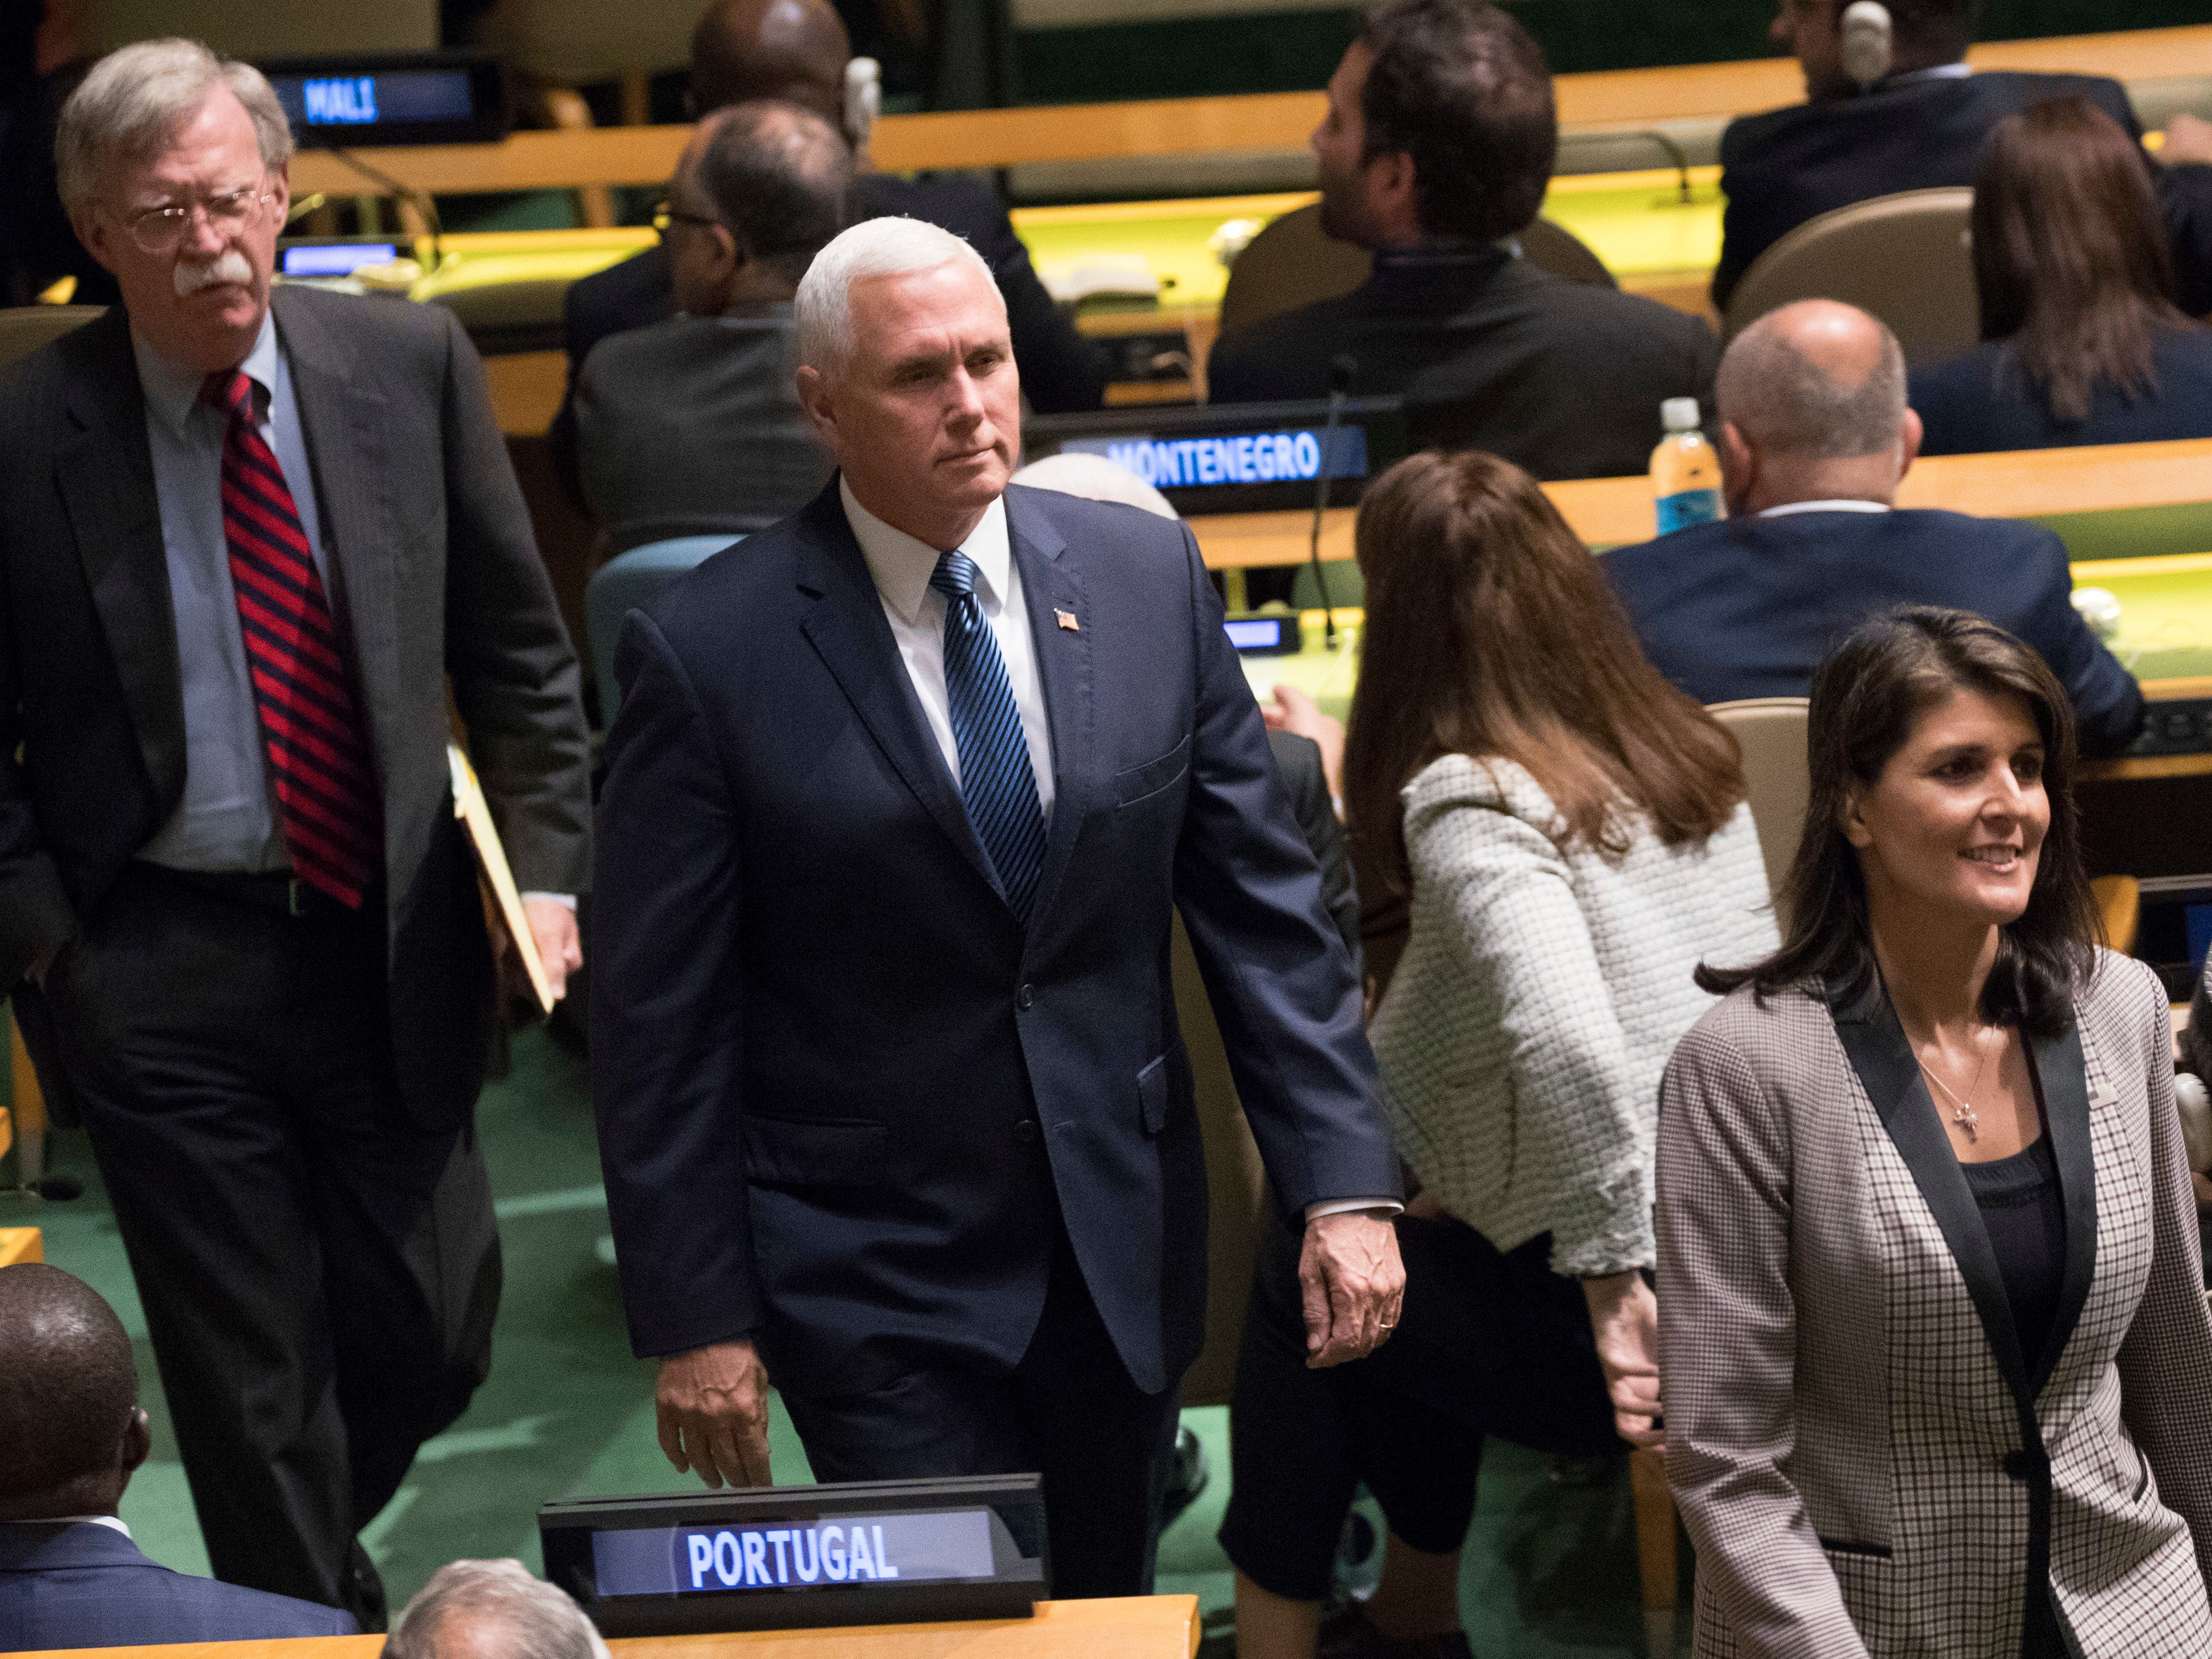 National security adviser John Bolton, left, Vice President Mike Pence, center, and Nikki Haley, the U.S. ambassador to the United Nations, arrive ahead of President Donald Trump's address to the 73rd session of the United Nations General Assembly, Tuesday, Sept. 25, 2018 at U.N. headquarters.